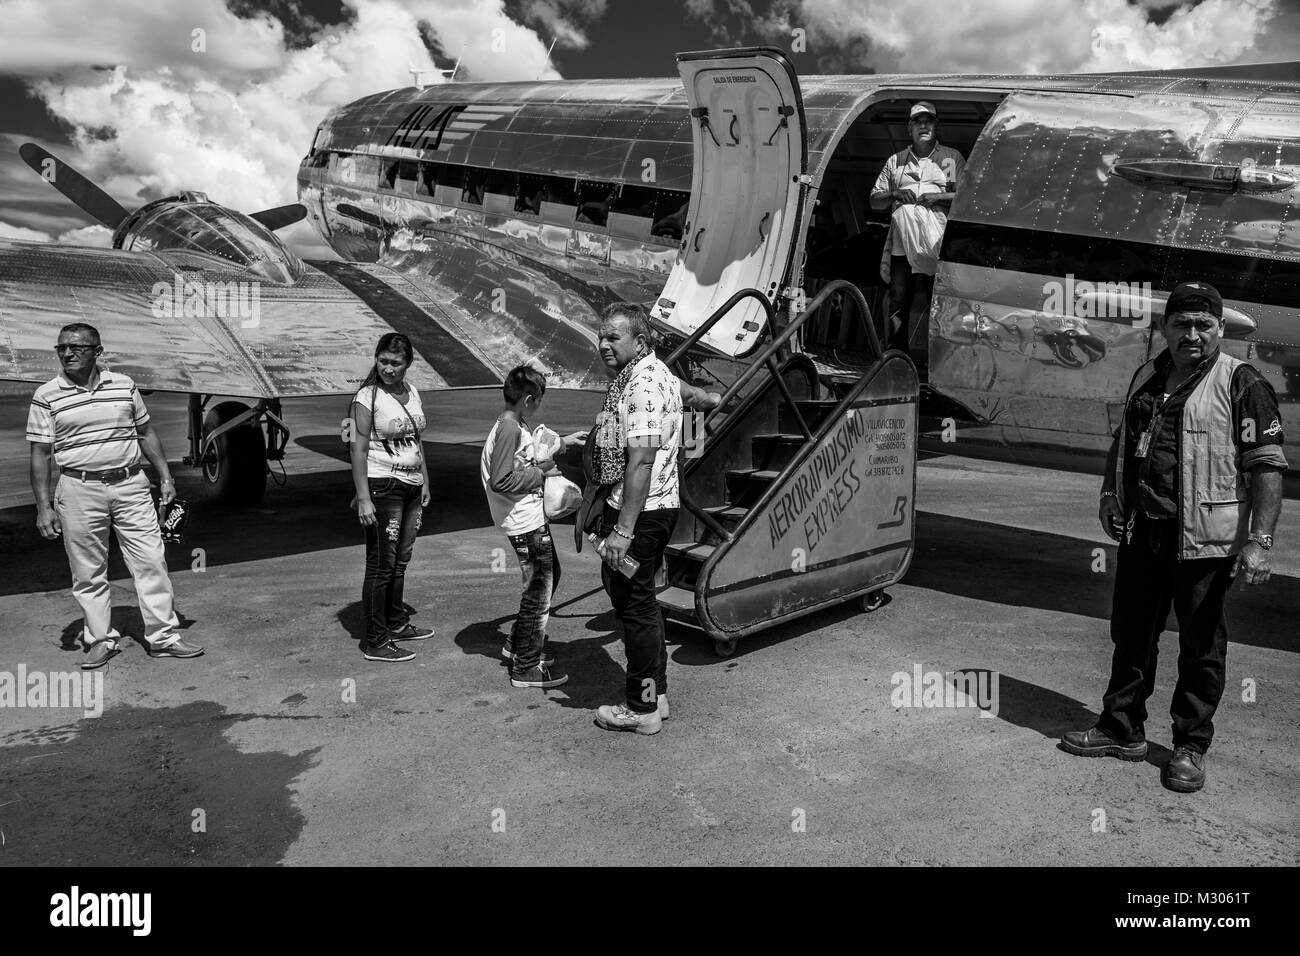 Passengers board a Douglas DC-3 aircraft at the runway of the airport in Barranco Minas, Colombia. - Stock Image